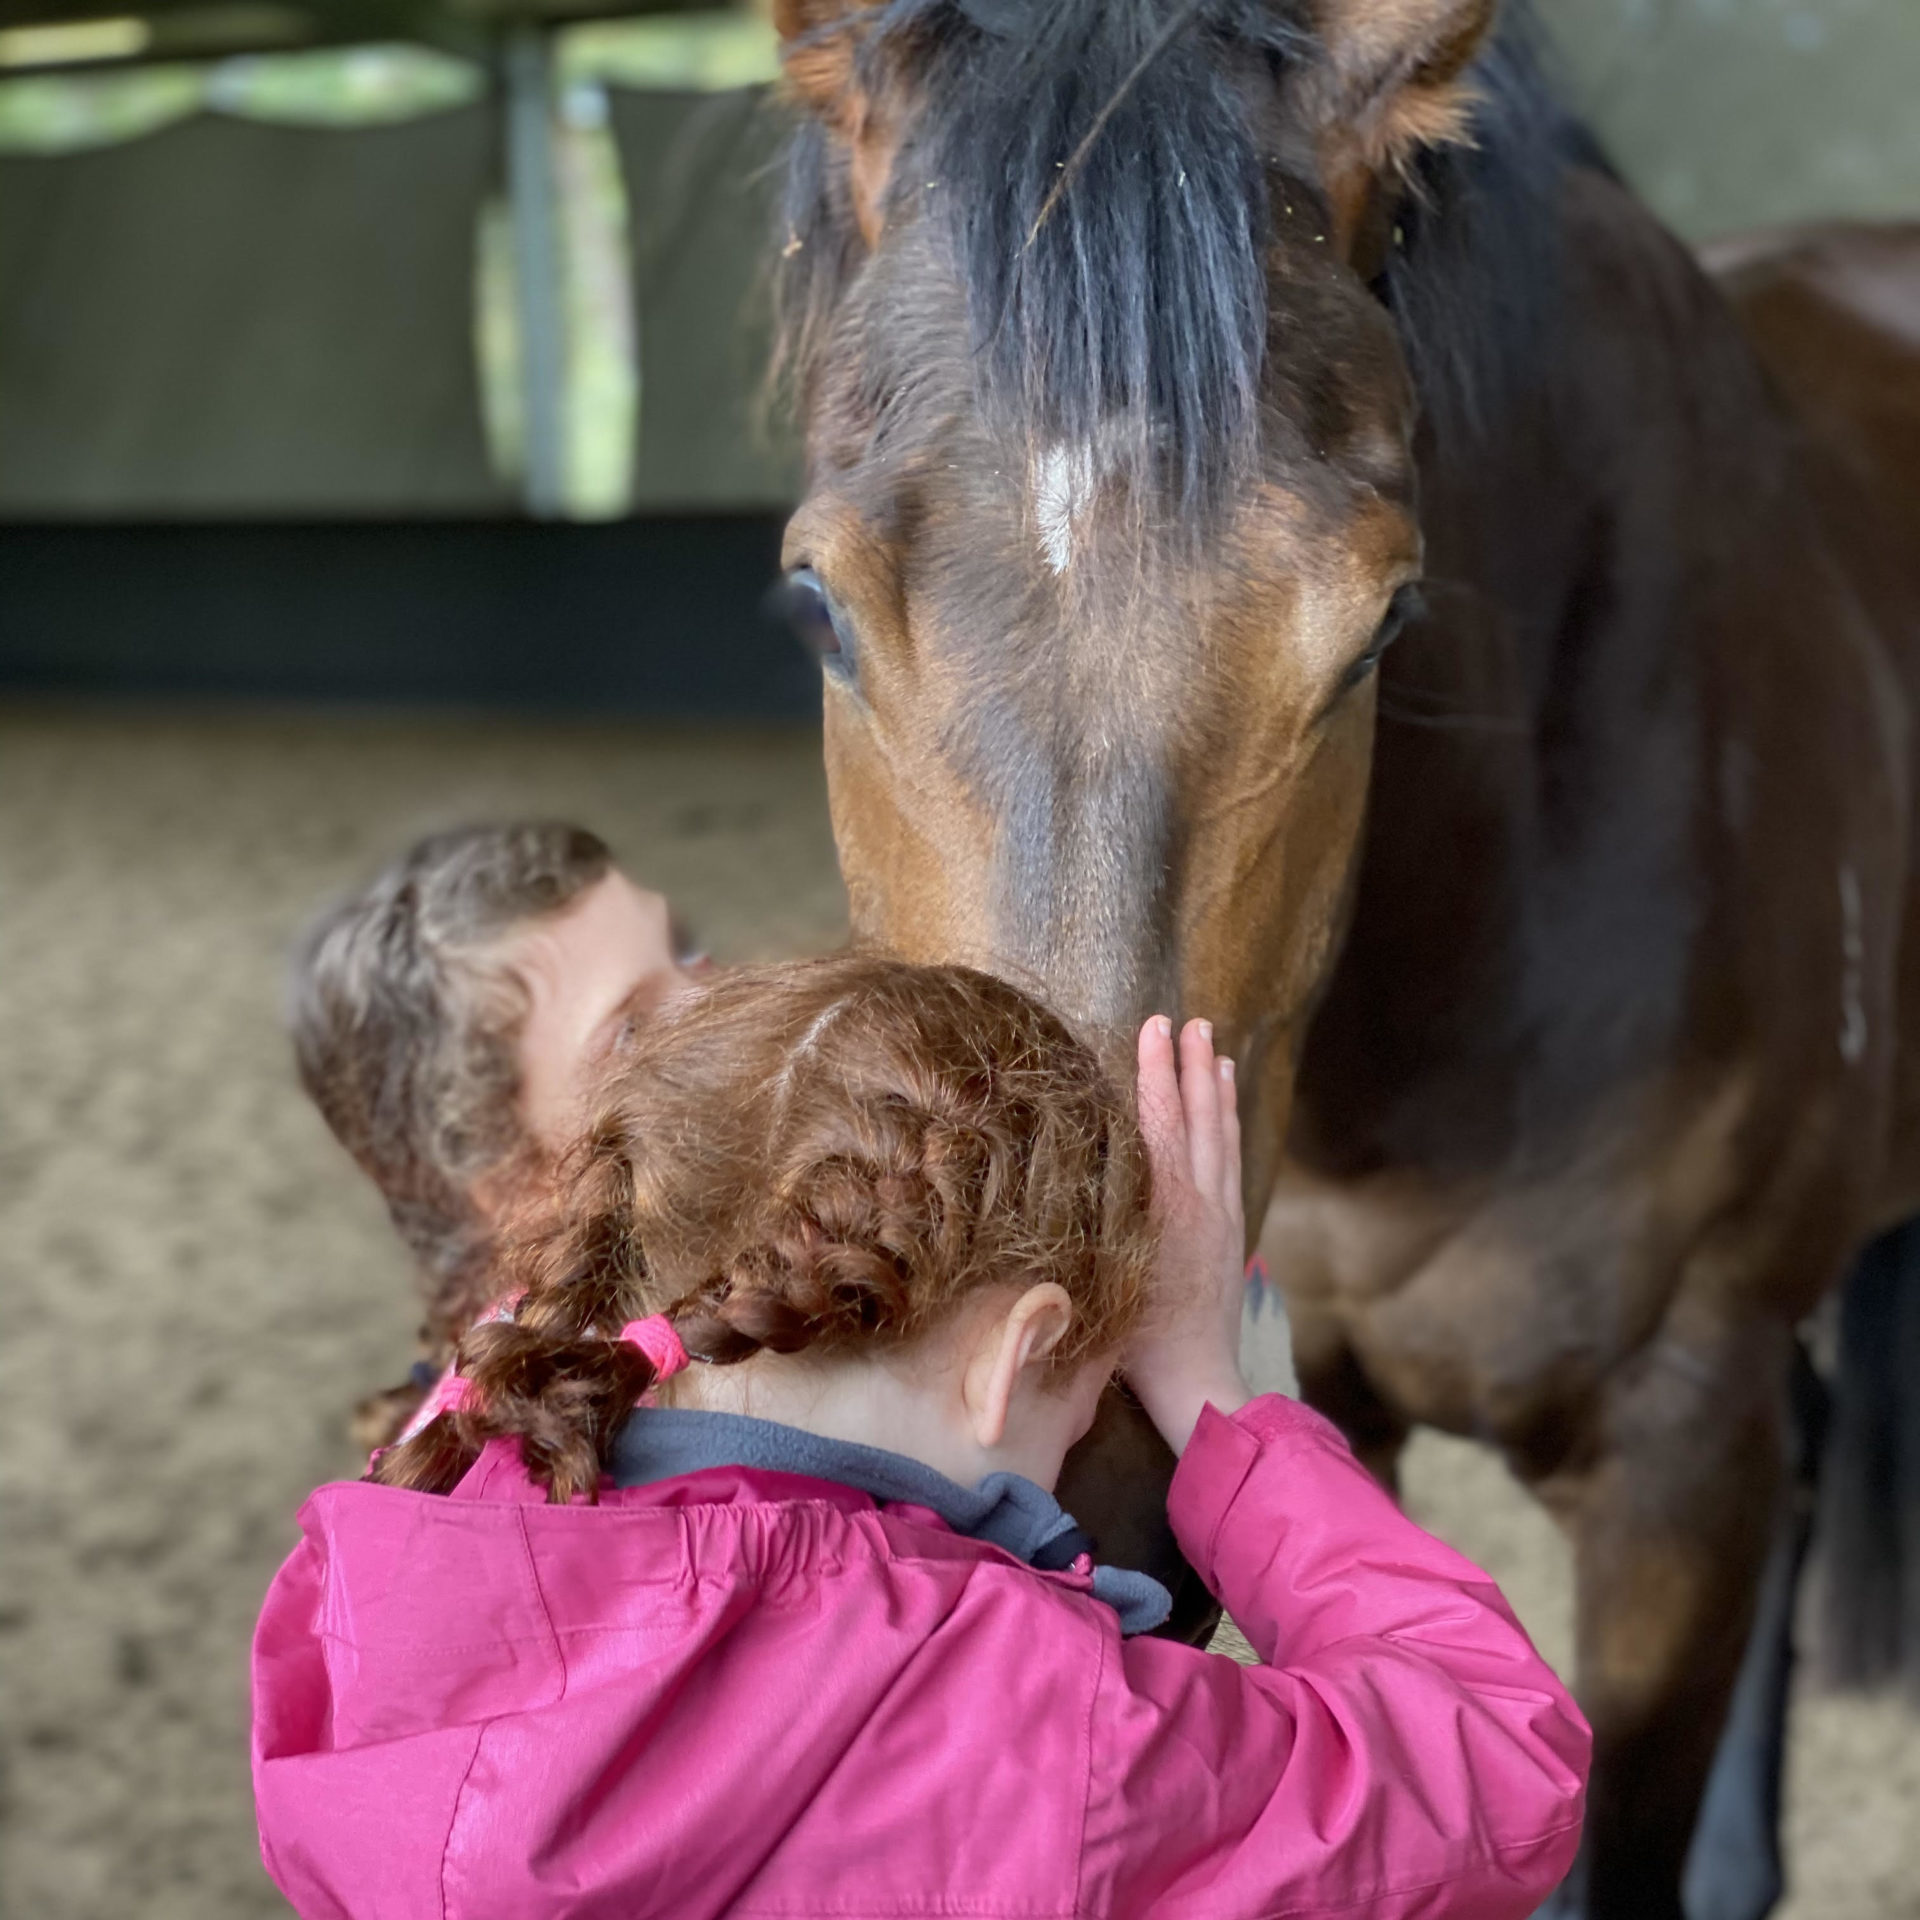 instructor and boy next to horse